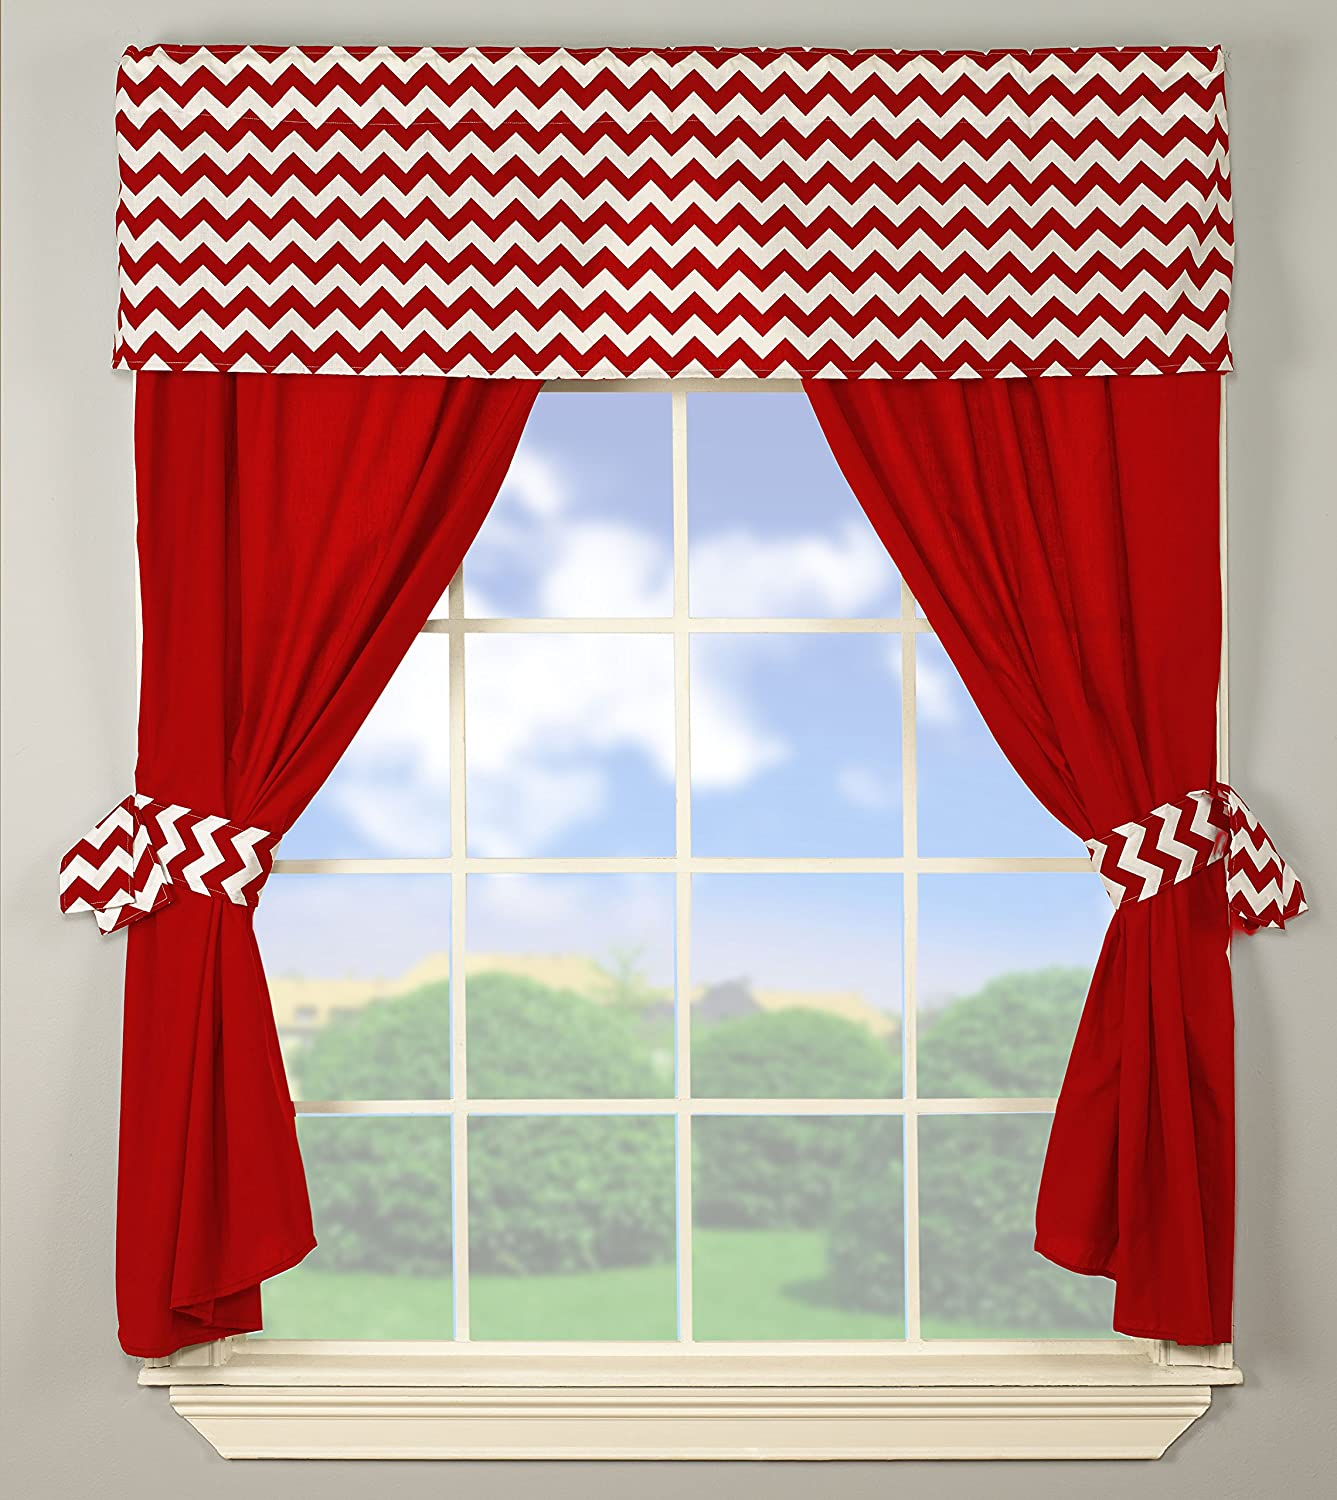 Baby Doll Bedding Chevron Window Valance and Curtain Set, Black 705valc5